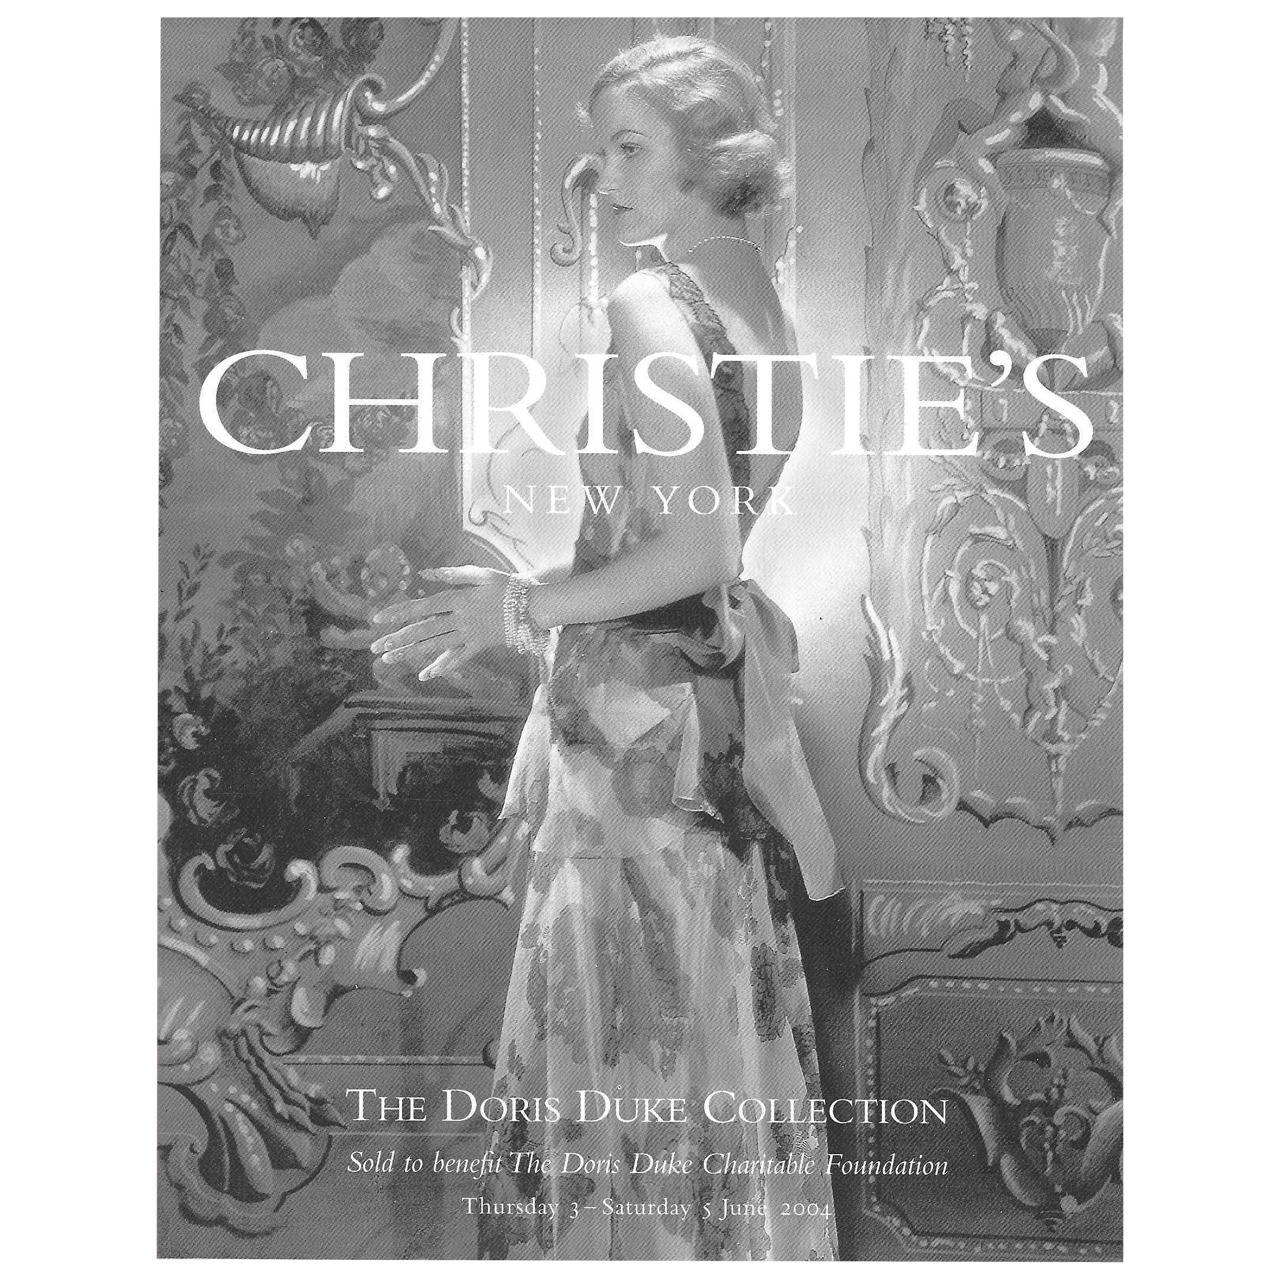 Christie's Auction Catalogue   Ensuring the accurate translation of world-renowned artwork into both large-format visuals and print was a tremendous responsibility. For this eager art enthusiast, trips into the vaults to view originals were an unforgettable privilege.